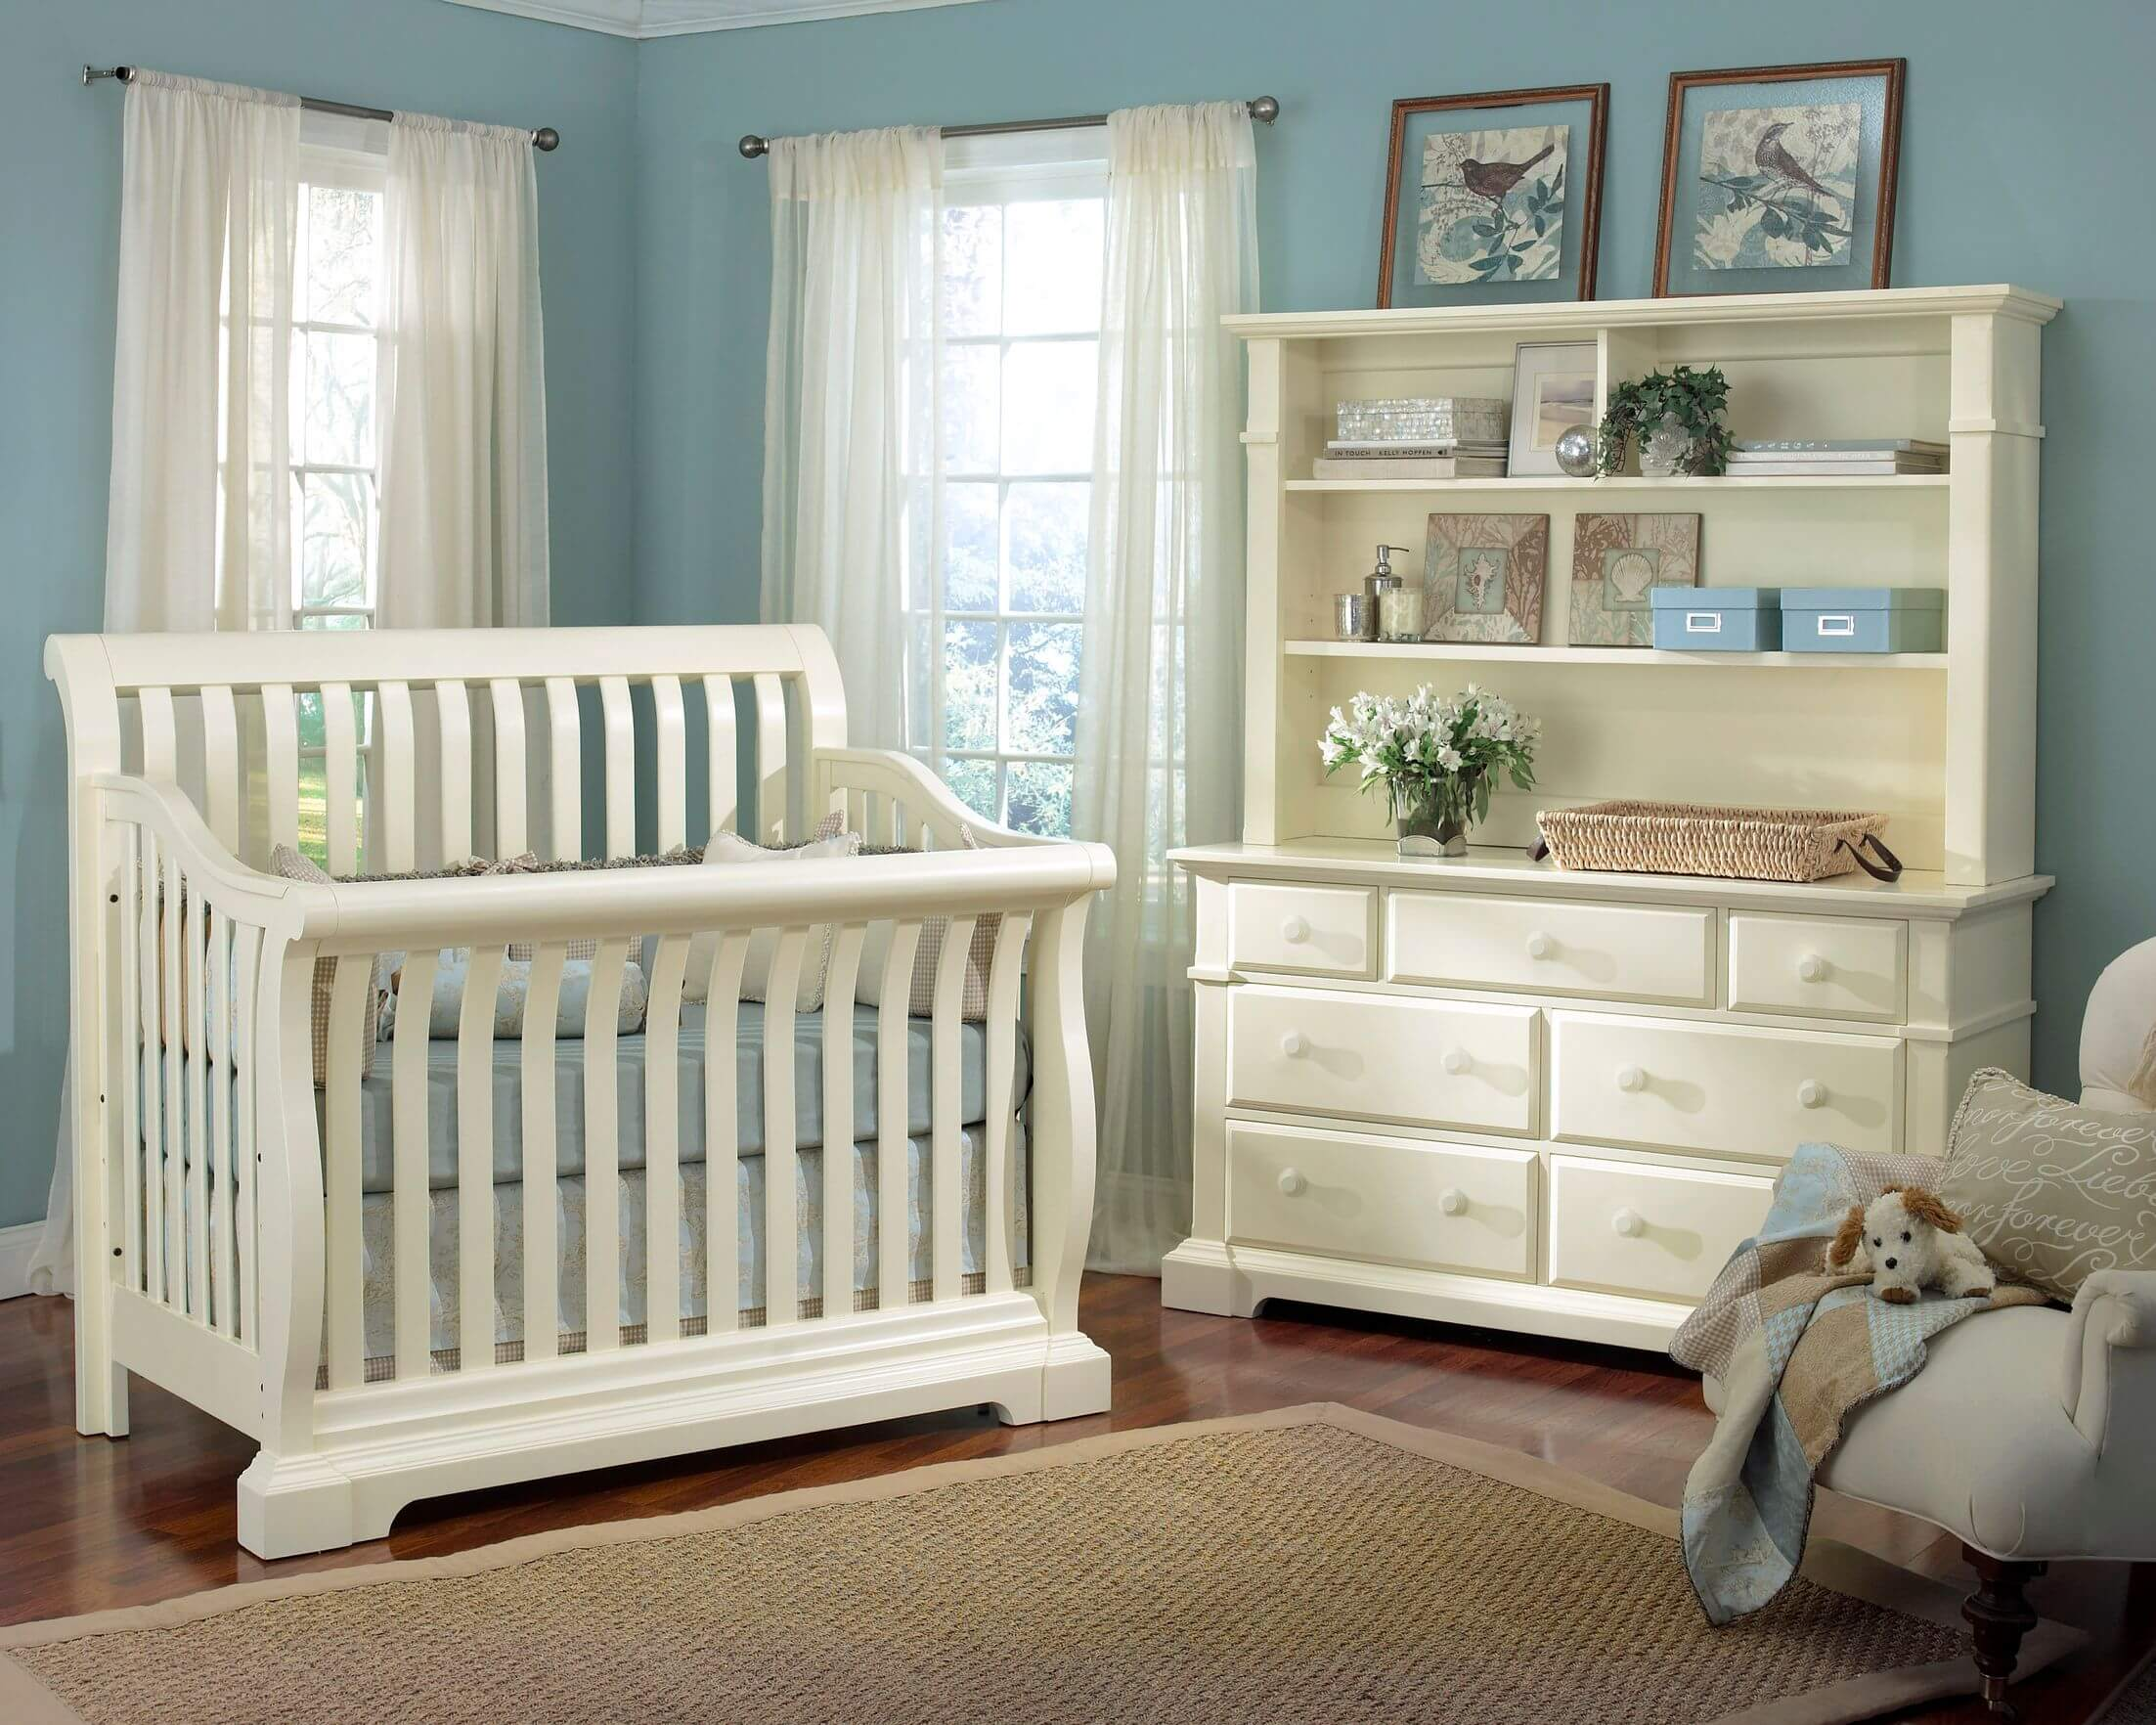 lush white wood construction crib and matching dresser stand over dark hardwood flooring in this nursery - Nursery Design Ideas